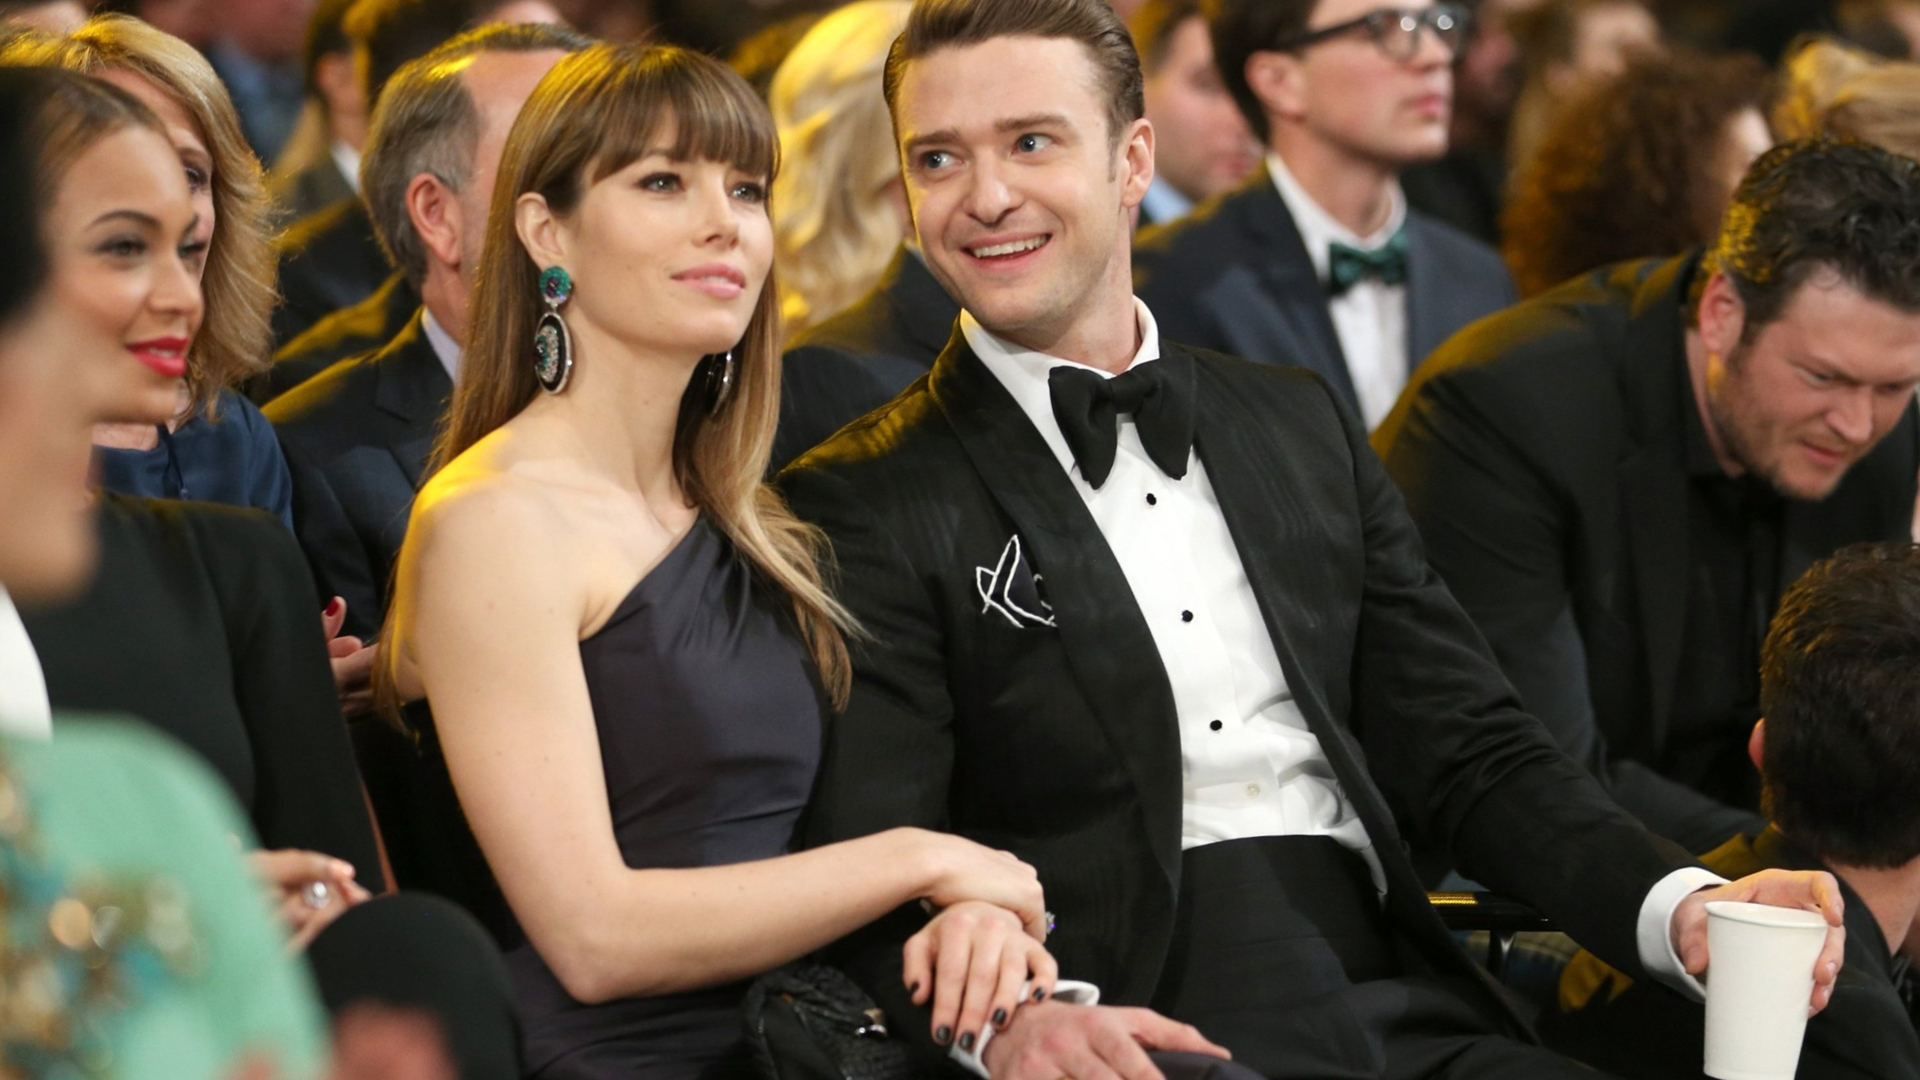 justin timberlake dating In sickness and in health, pink has a famous friend in her corner – justin  timberlake after the beautiful trauma singer canceled her recent.